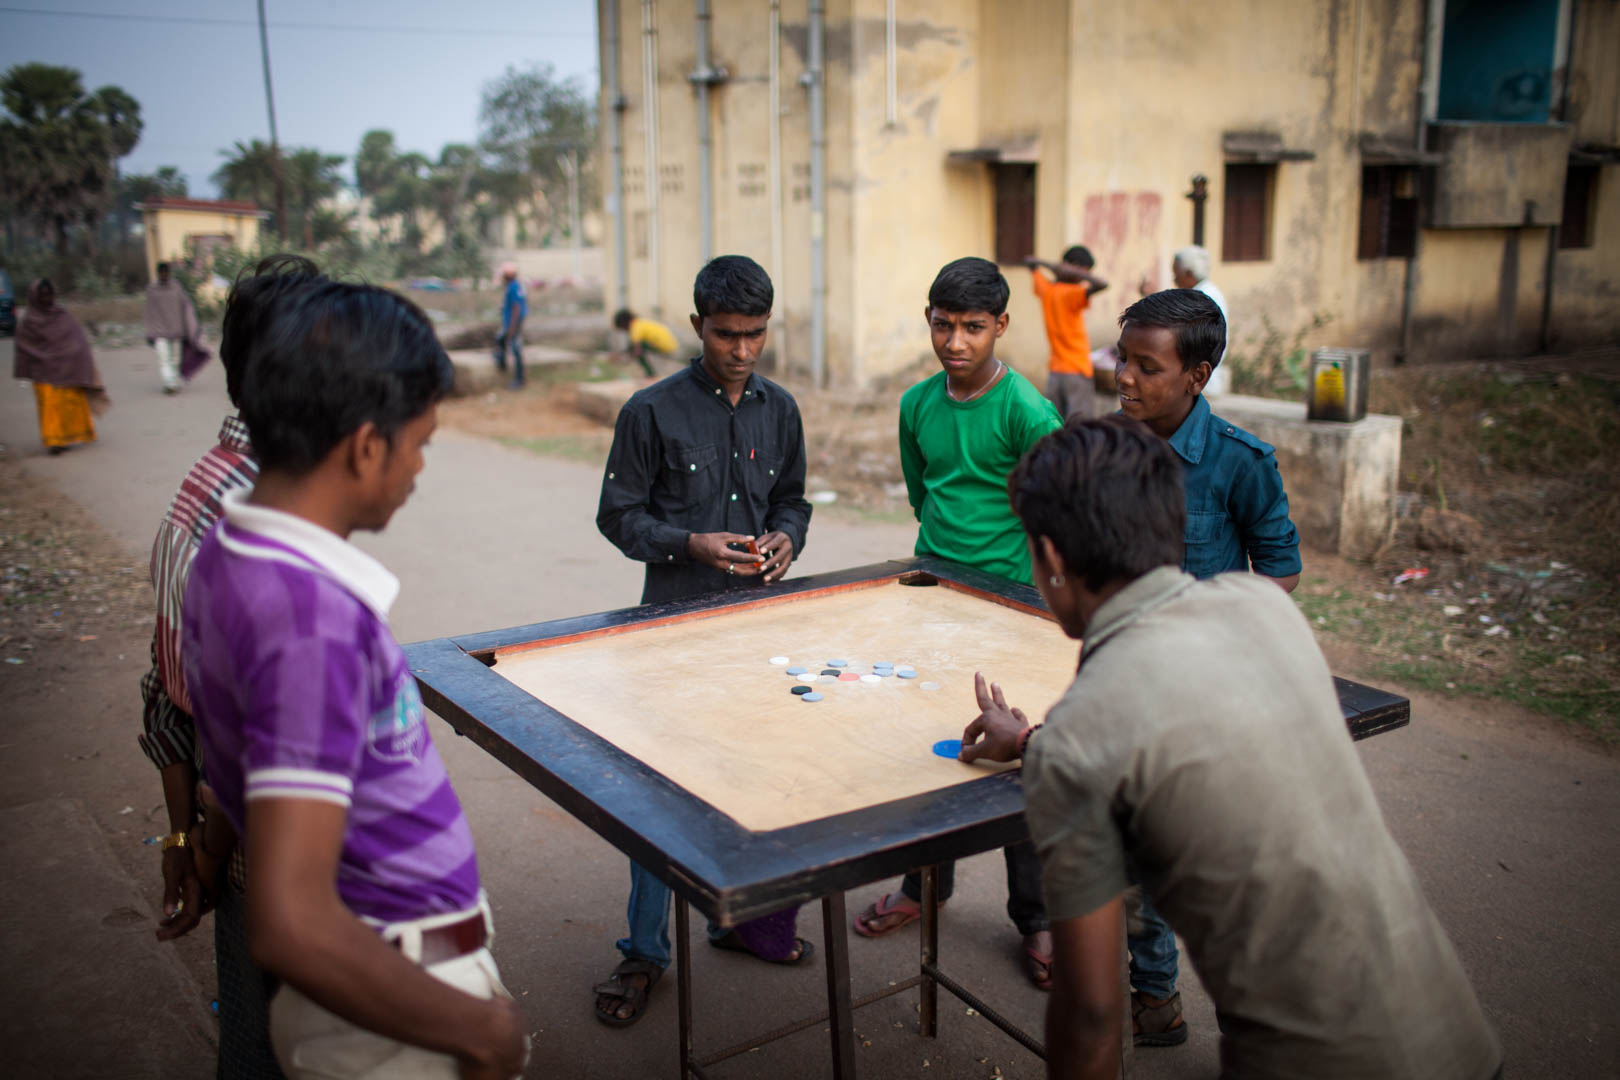 A group of young people plays a game in a resettlement city to find some distraction.